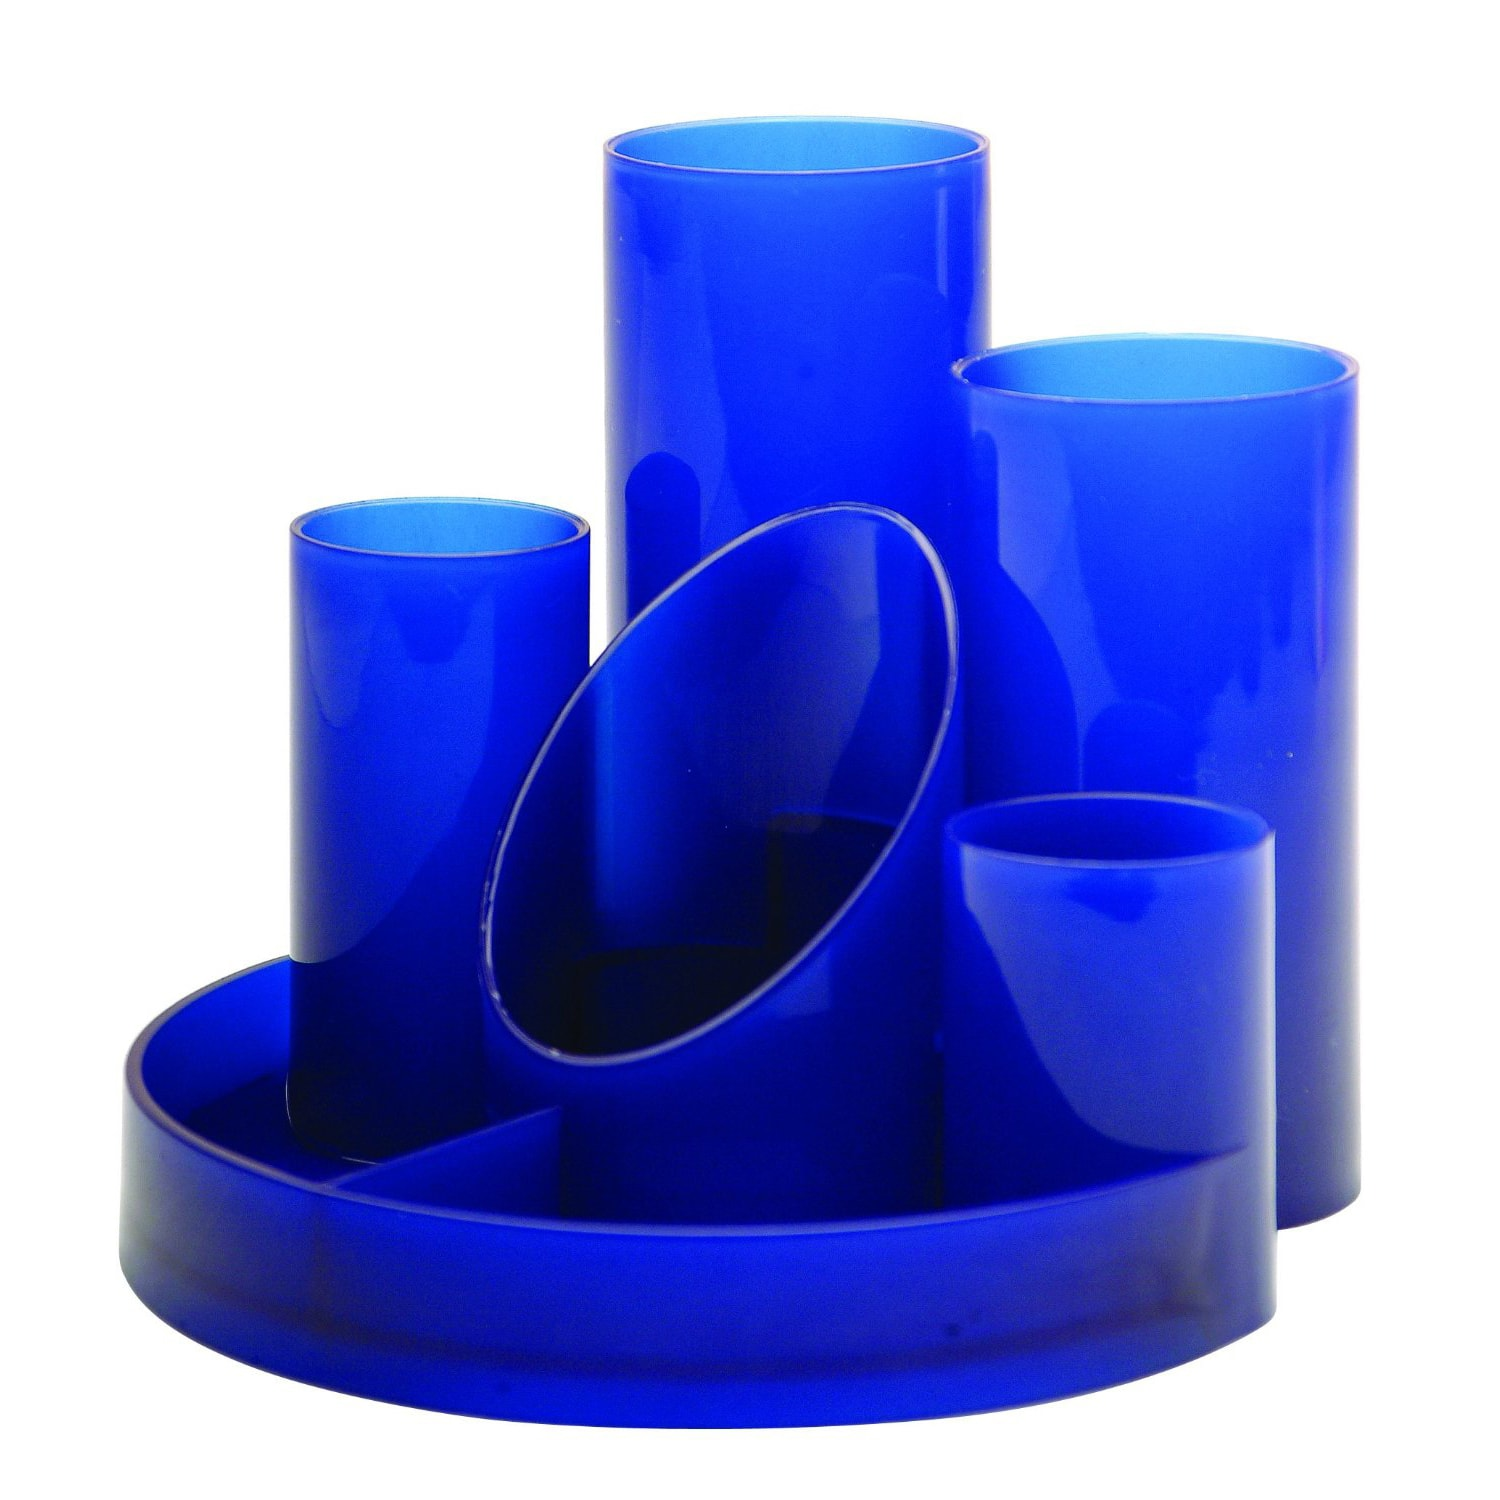 Desk Tidy Helix Blue